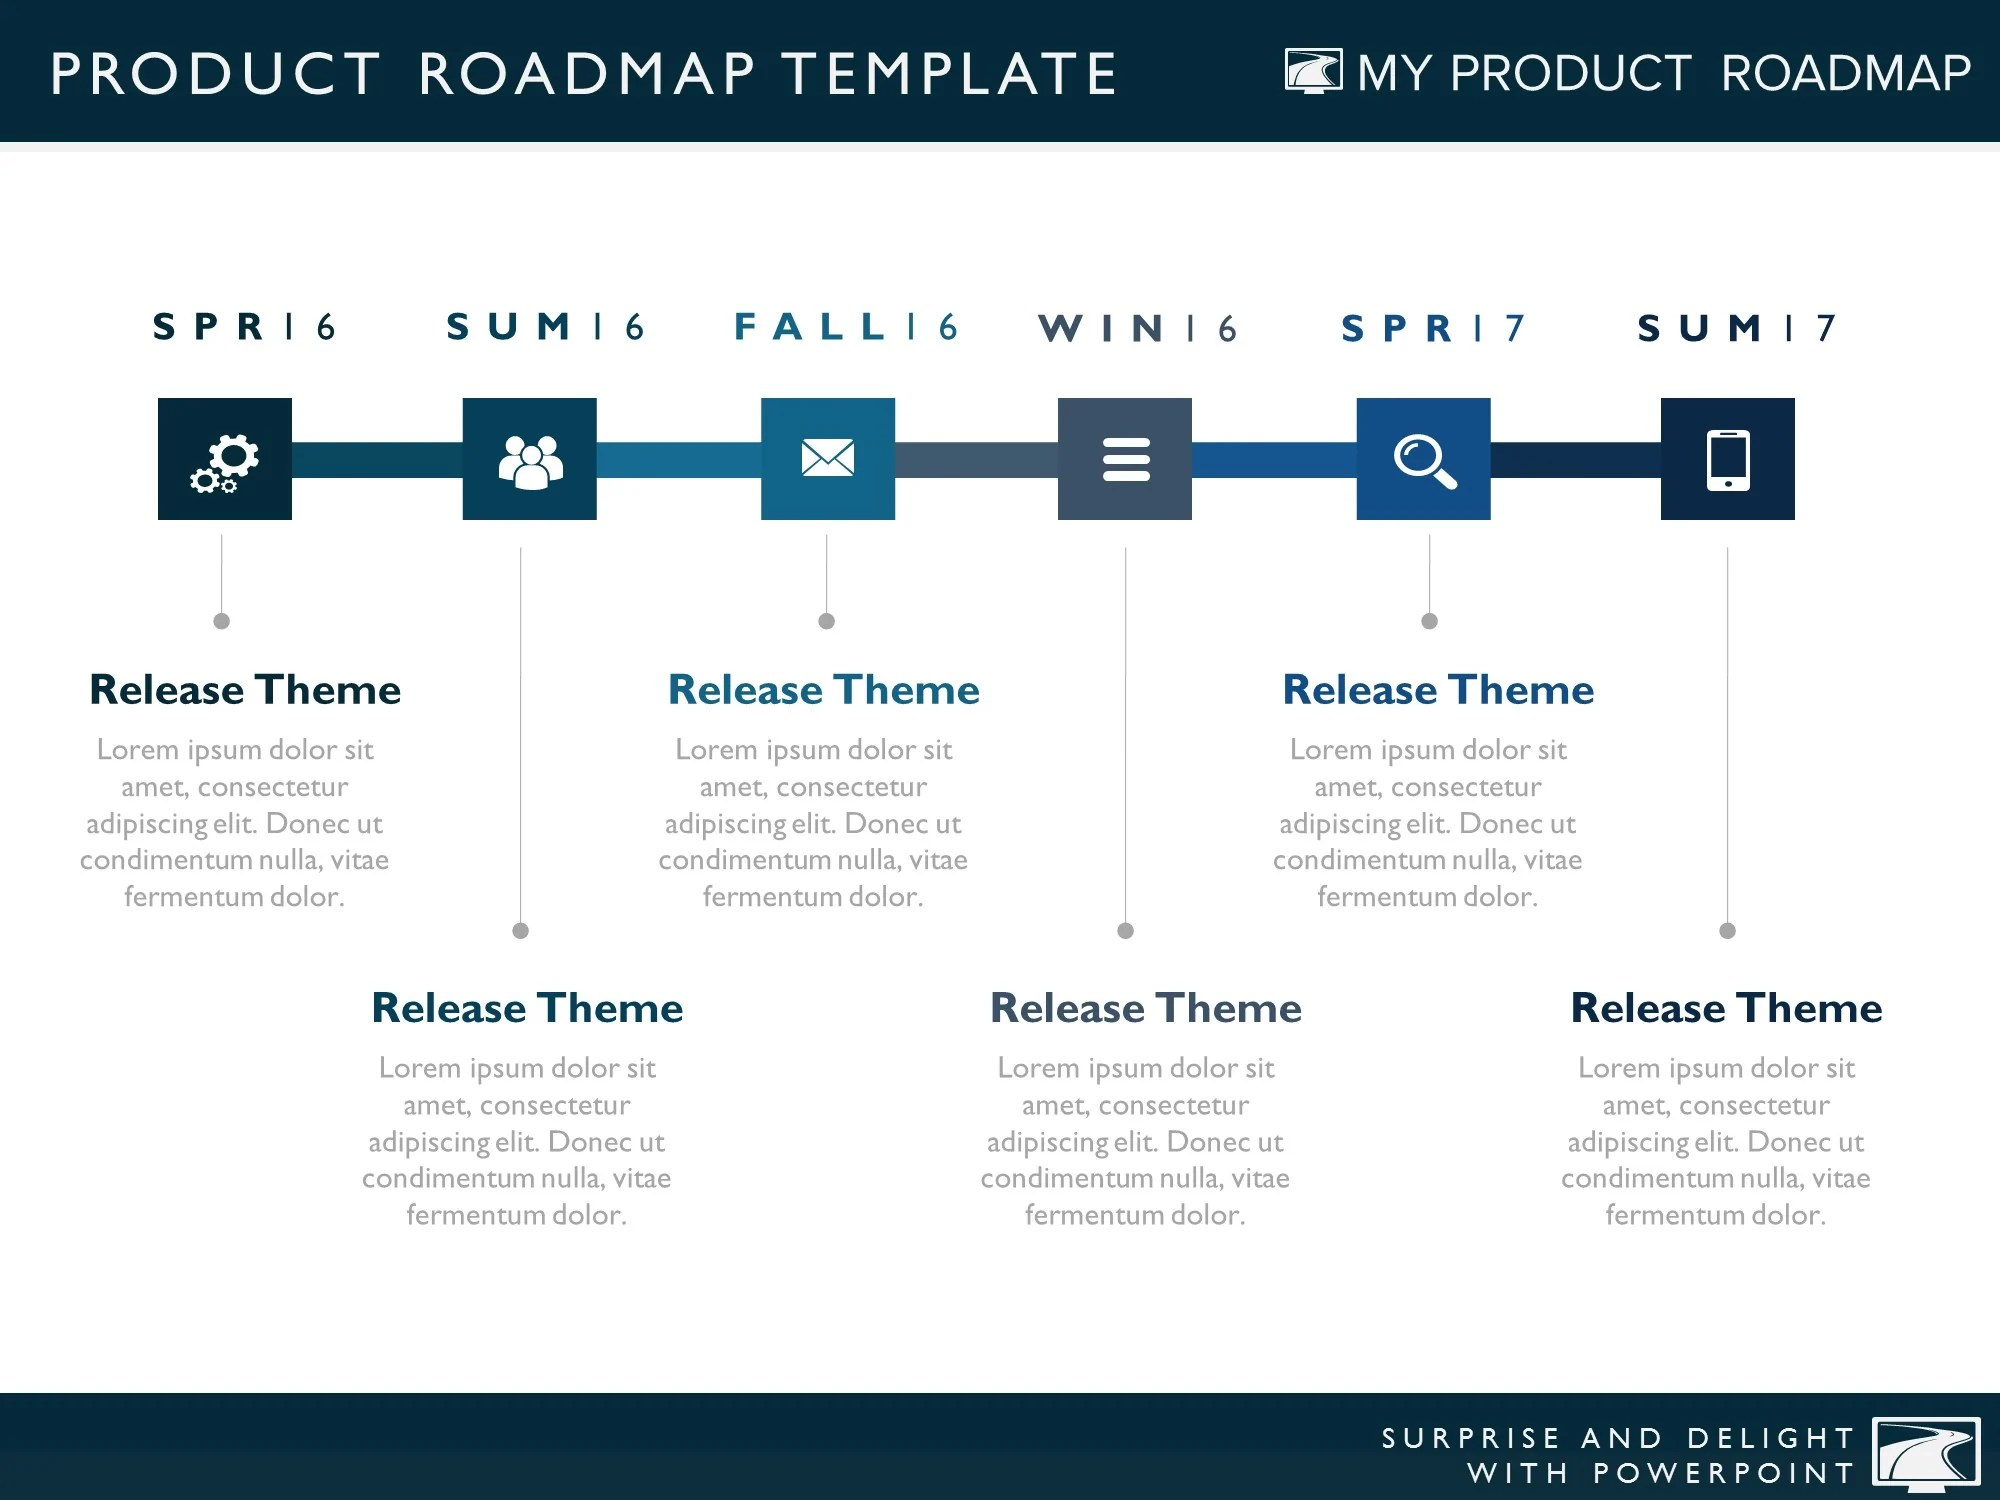 Powerpoint Product Road Map